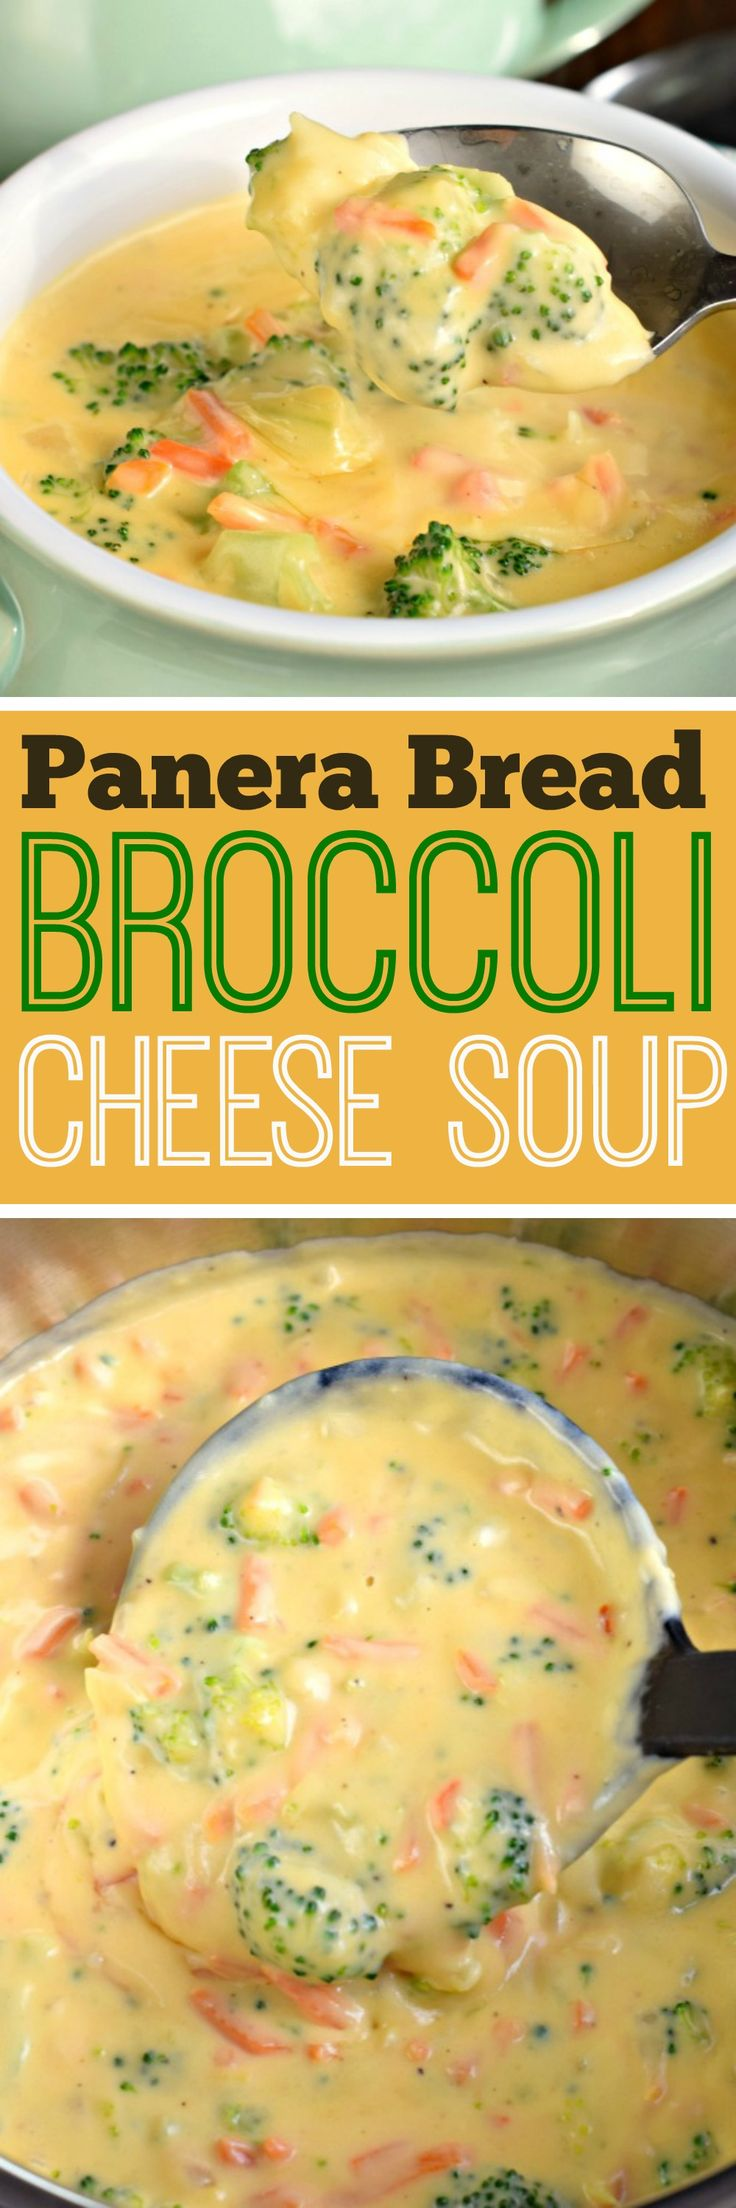 12525 best weeknight meal ideas images on pinterest cooking have you already tried this quick comfort food recipe the broccoli is healthy and cheese yummy perfect combination copycat panera broccoli cheese soup forumfinder